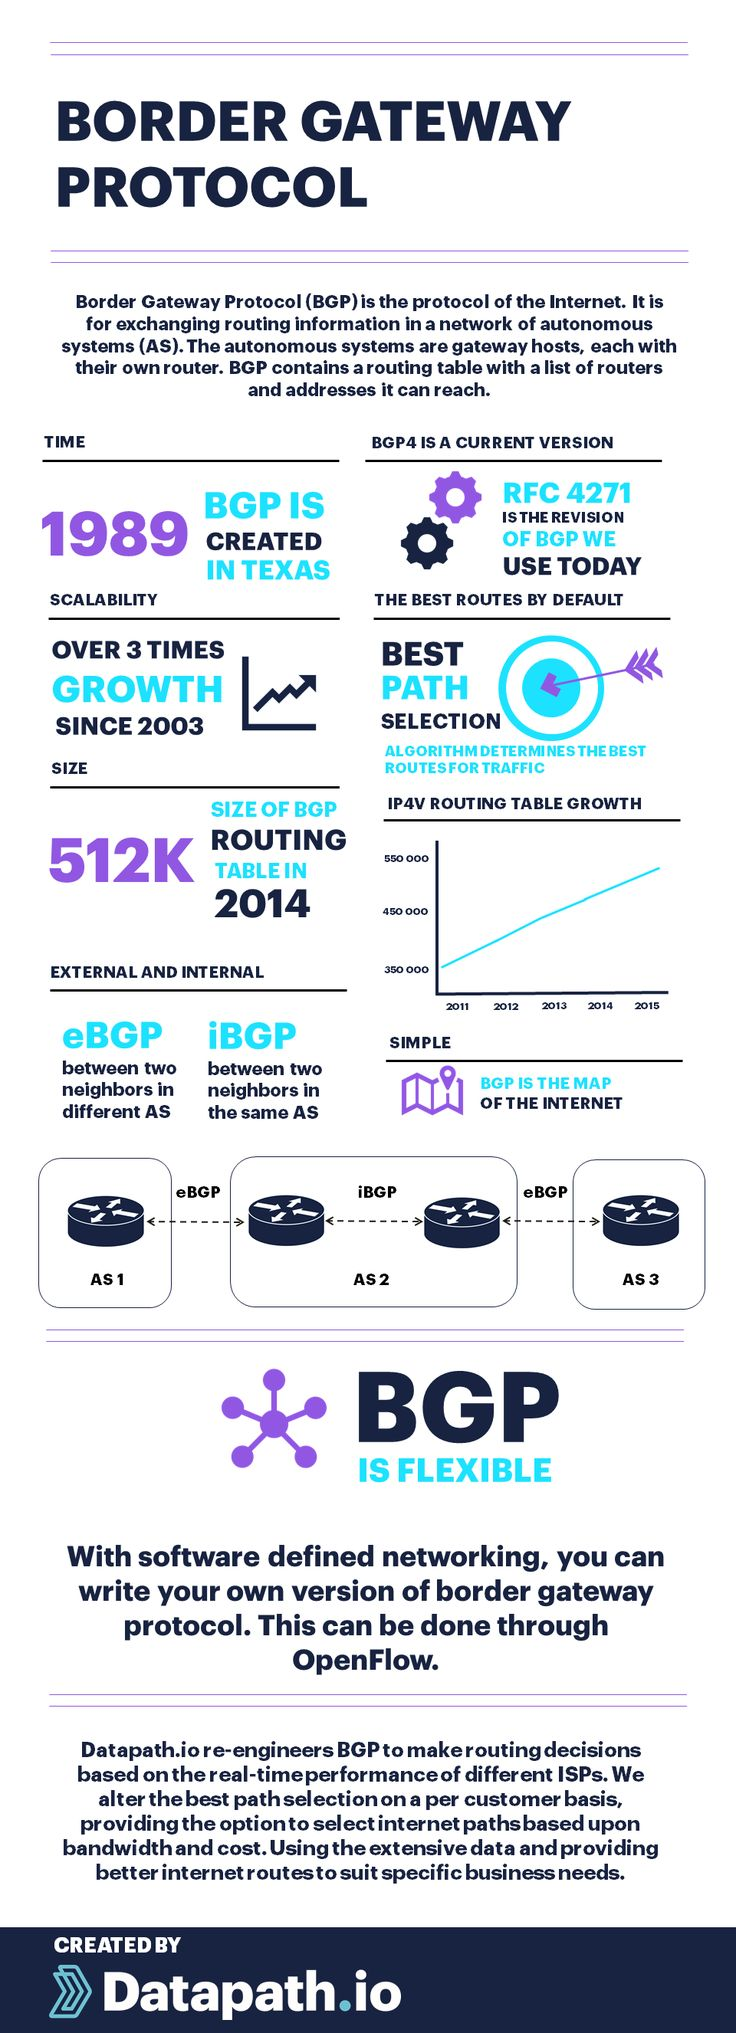 Border Gateway Protocol Infographic (BGP)